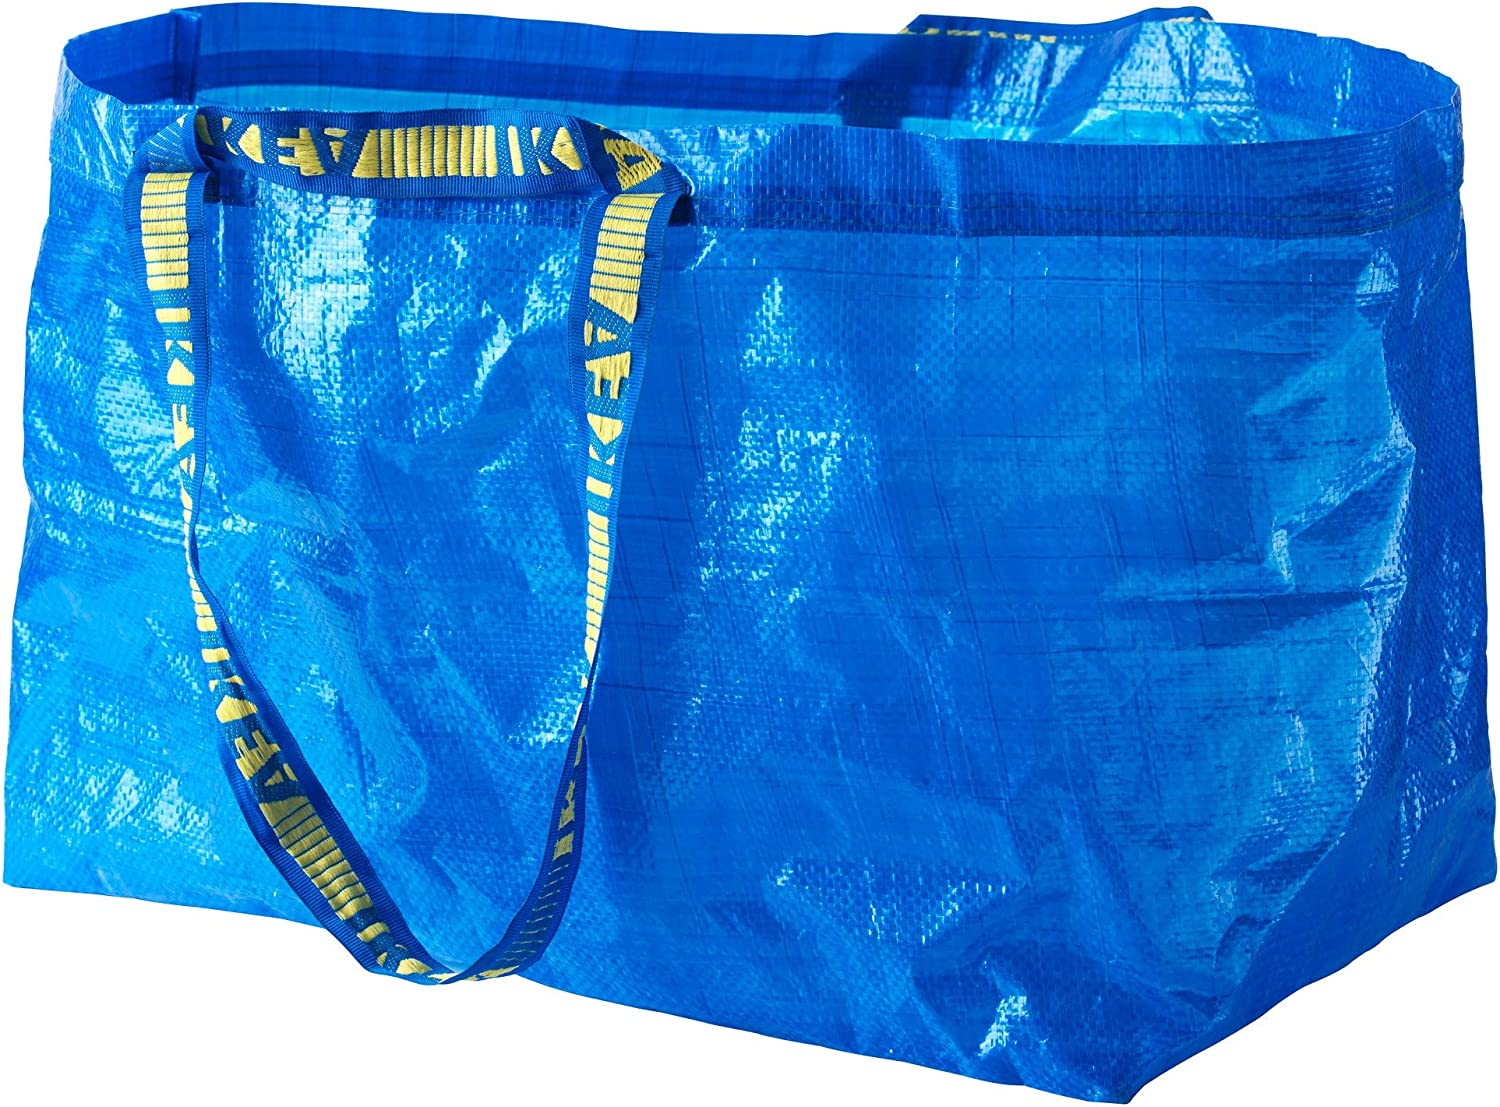 Ikea 172.283.40 Frakta Shopping Bag, Large, Blue, Set of 10